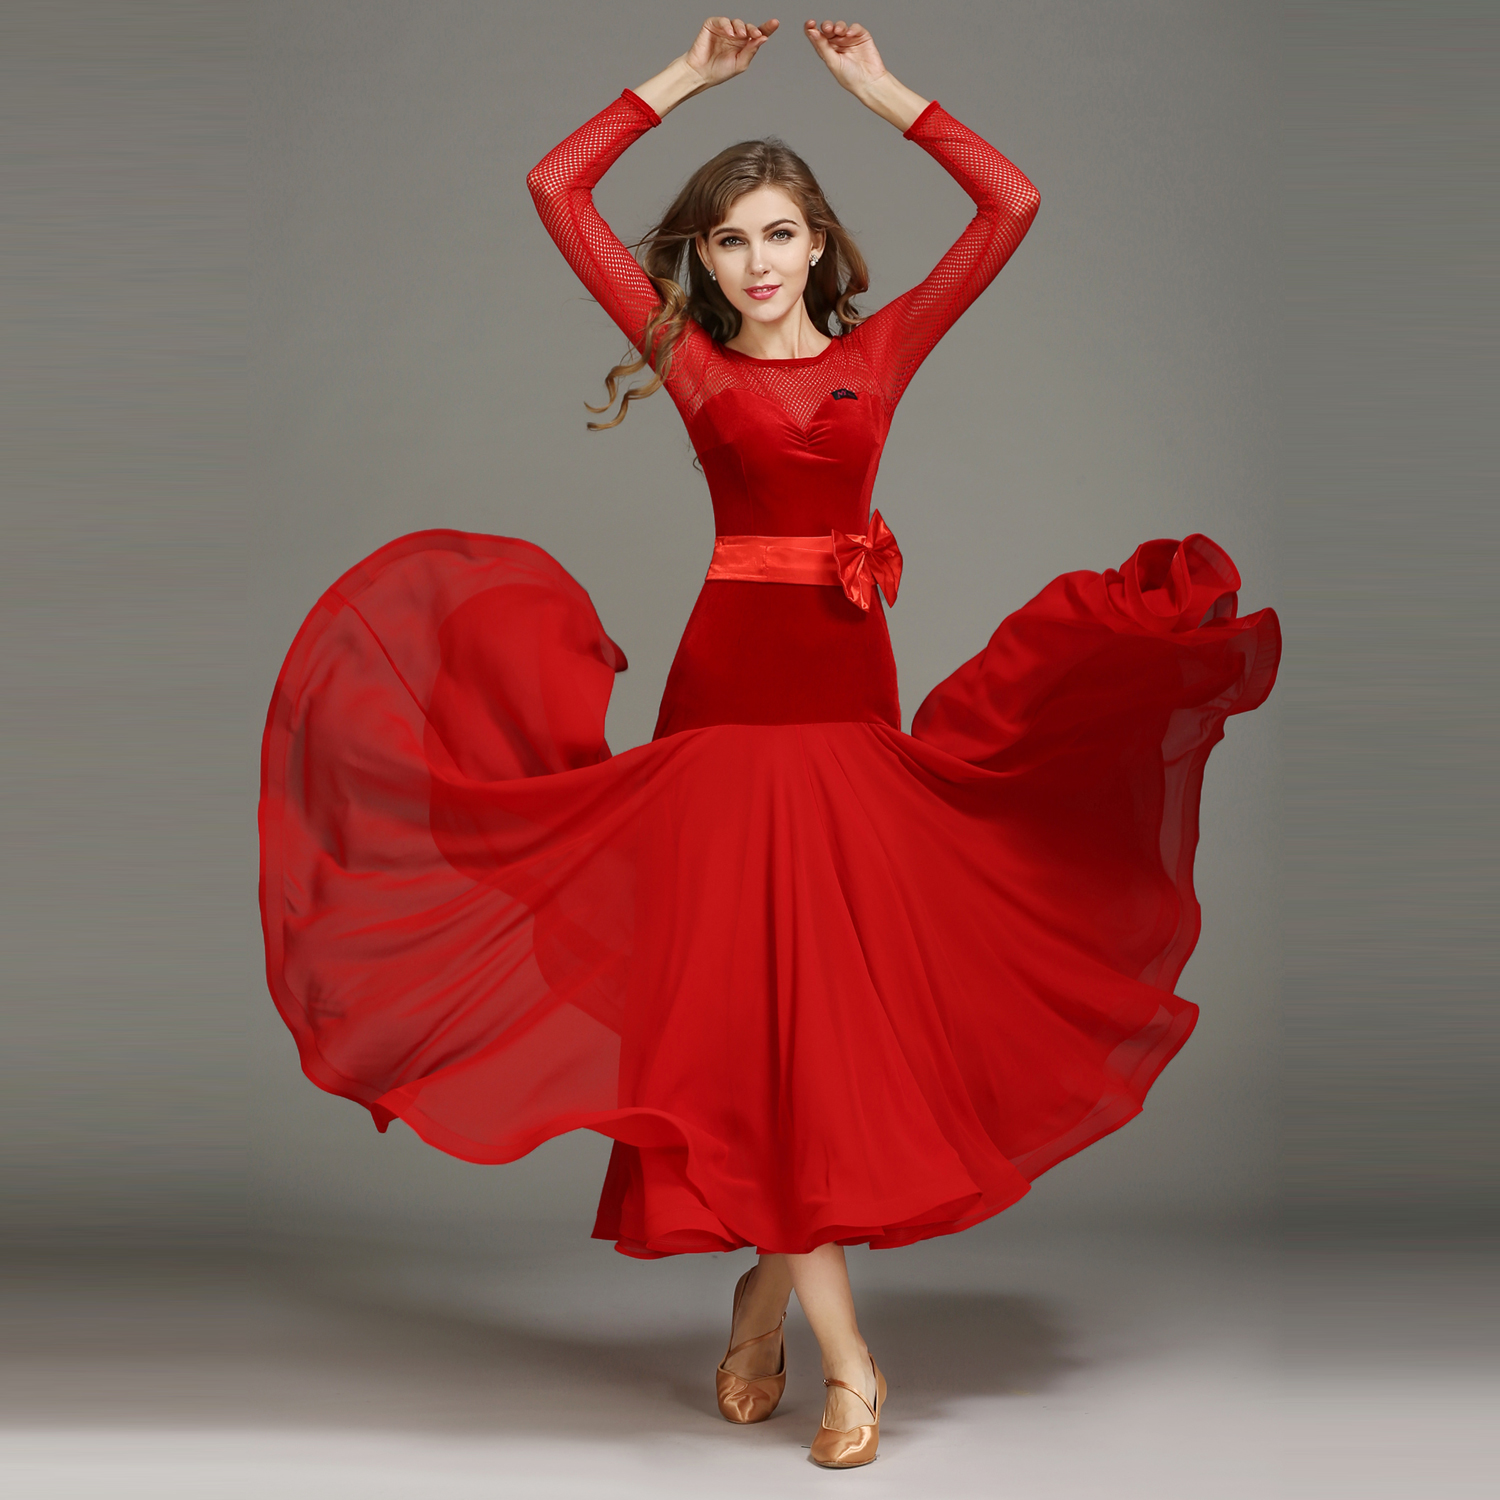 Modern Dance Costume Women Lady Adult Waltzing Tango Bow Dancing Dress Ballroom Costume Evening Party Dress tuffstuff ap 71lp